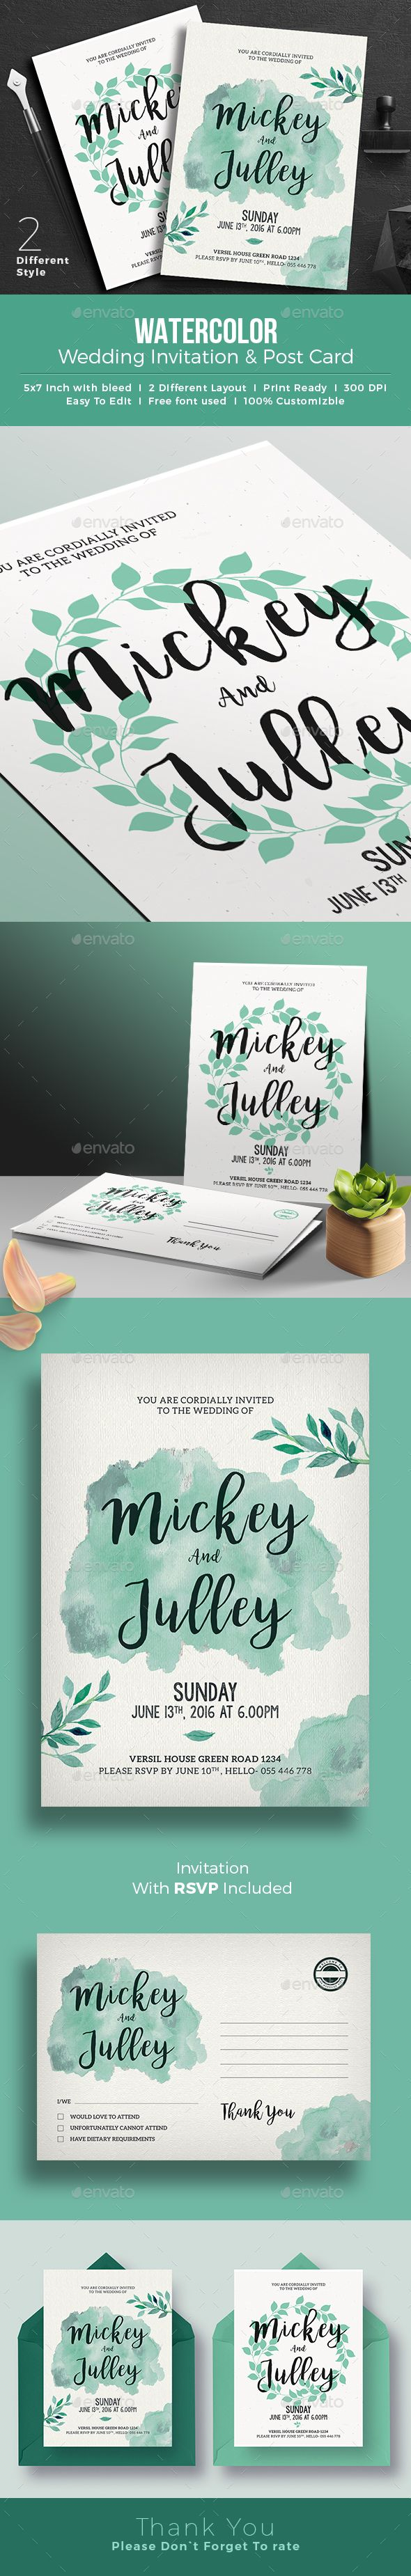 free wedding invitation psd%0A Water Color Wedding Invitation Post Card PSD Template   Trendy Modern  Design   Save The Date